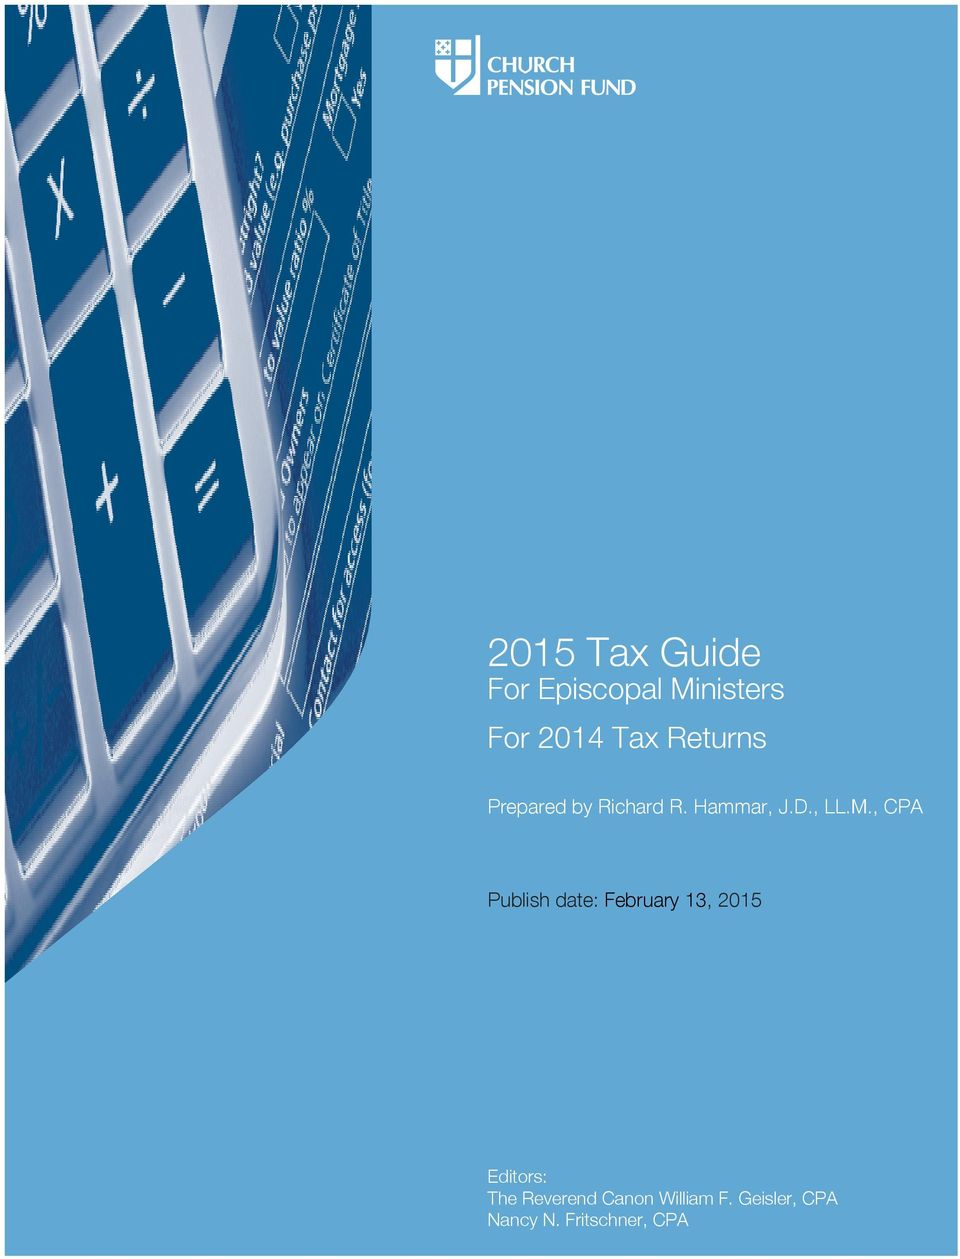 , CPA Publish date: February 13, 2015 Editors: The